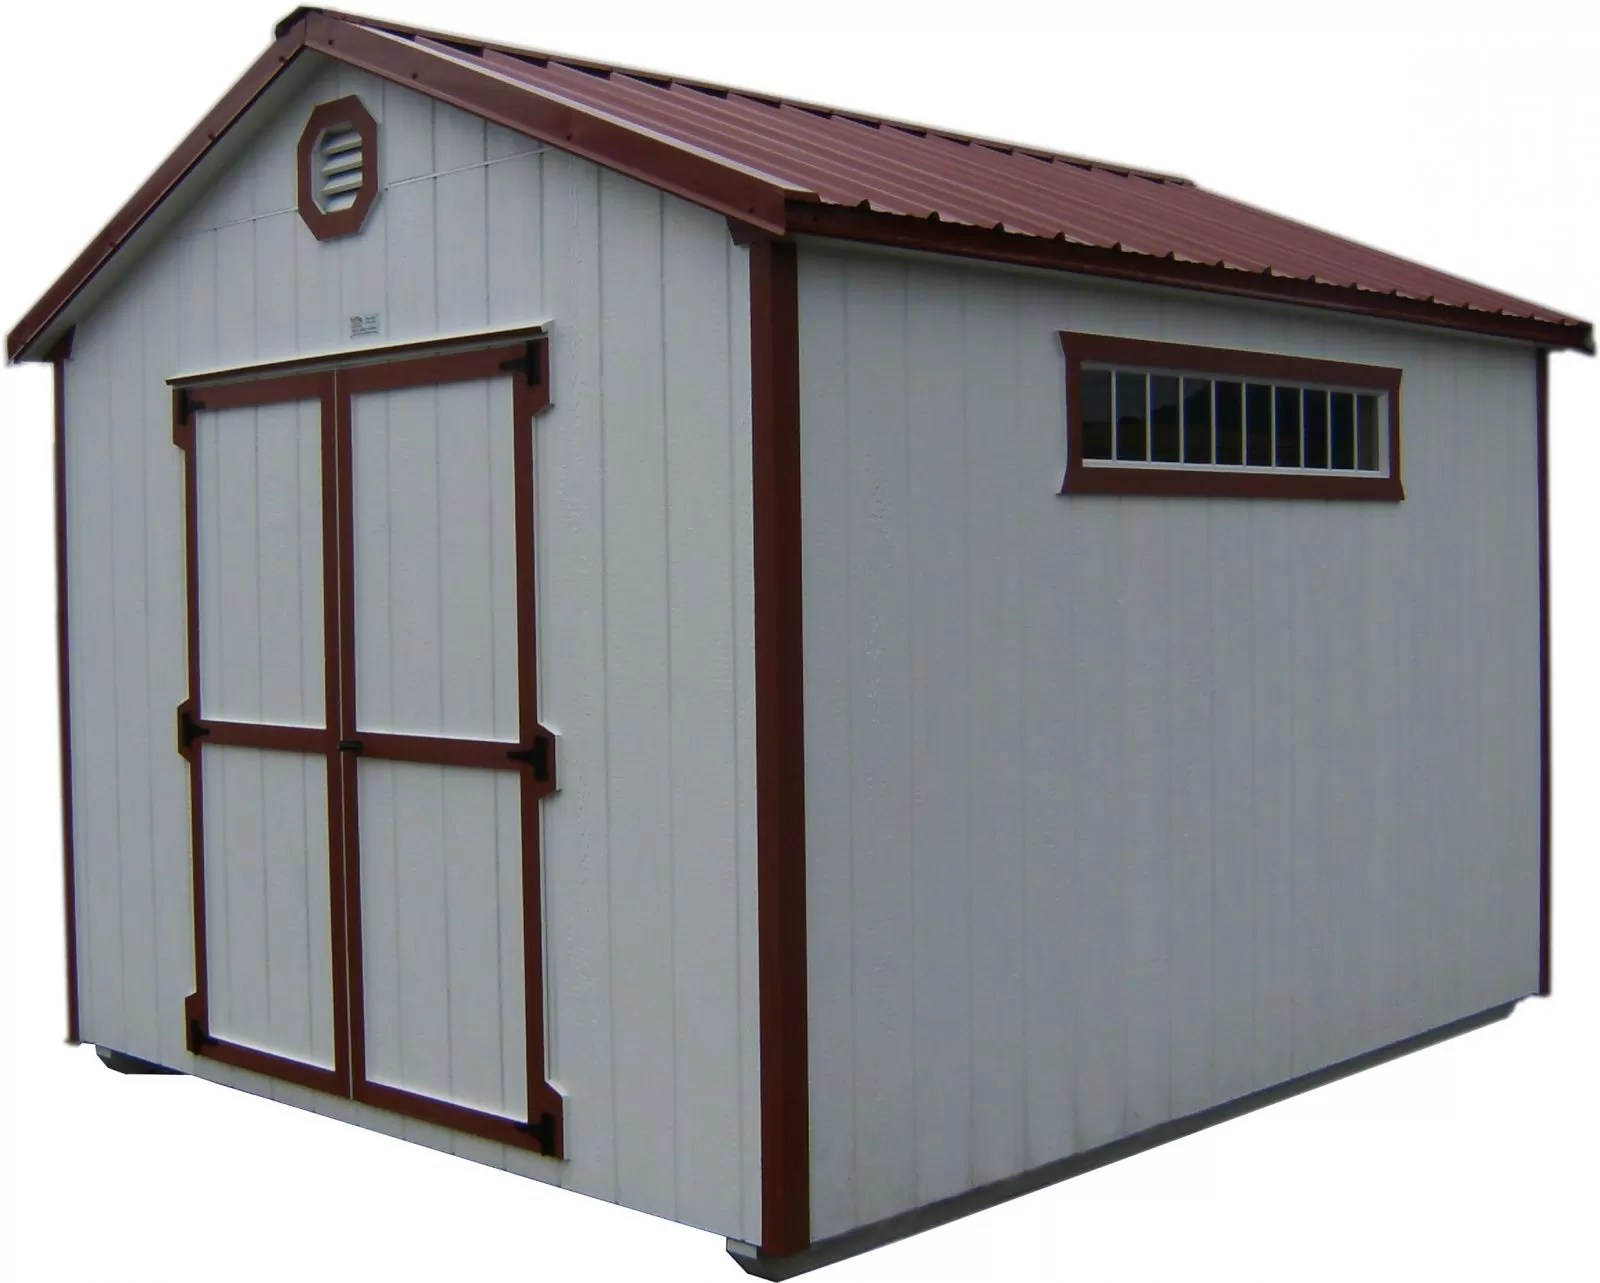 hight resolution of wood storage shed nearm me or